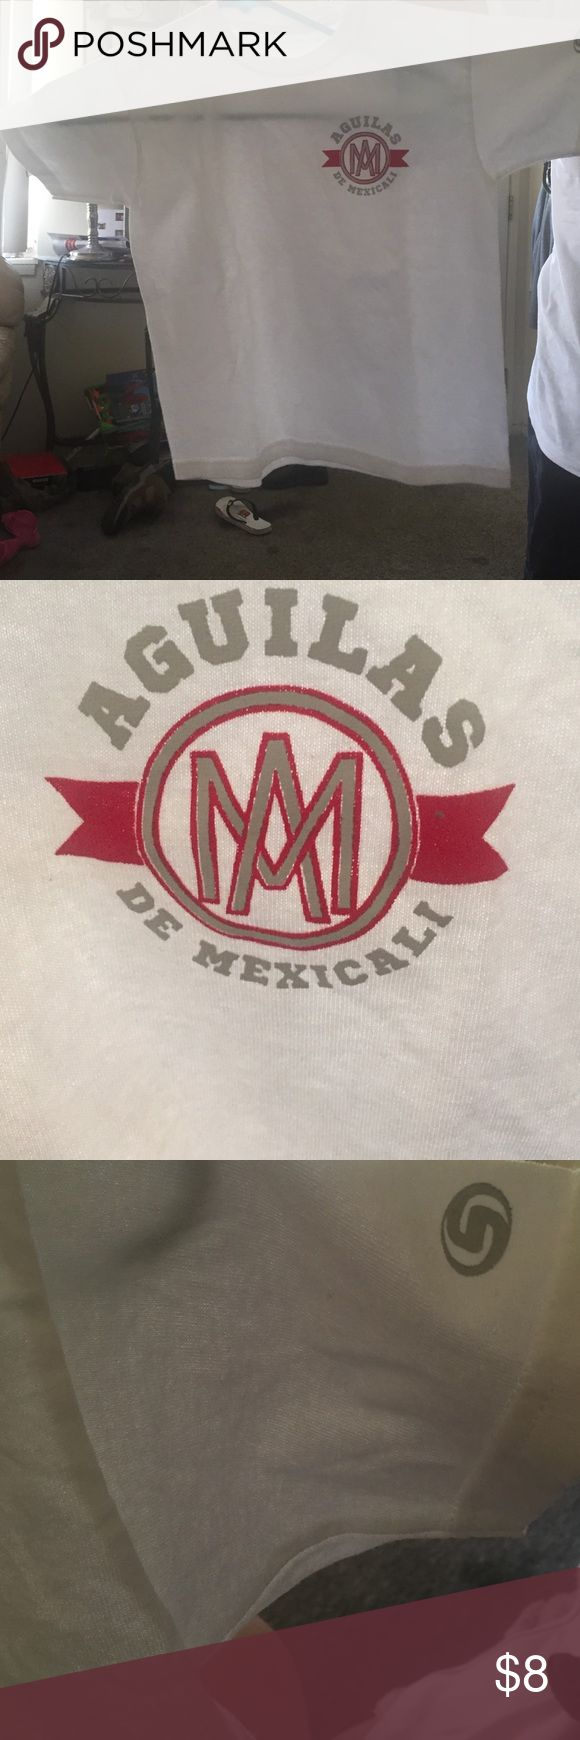 Aguilas de Mexicali baseball kids shirt. Mexicali baseball kids shirt Elsiglo Shirts & Tops Tees - Short Sleeve